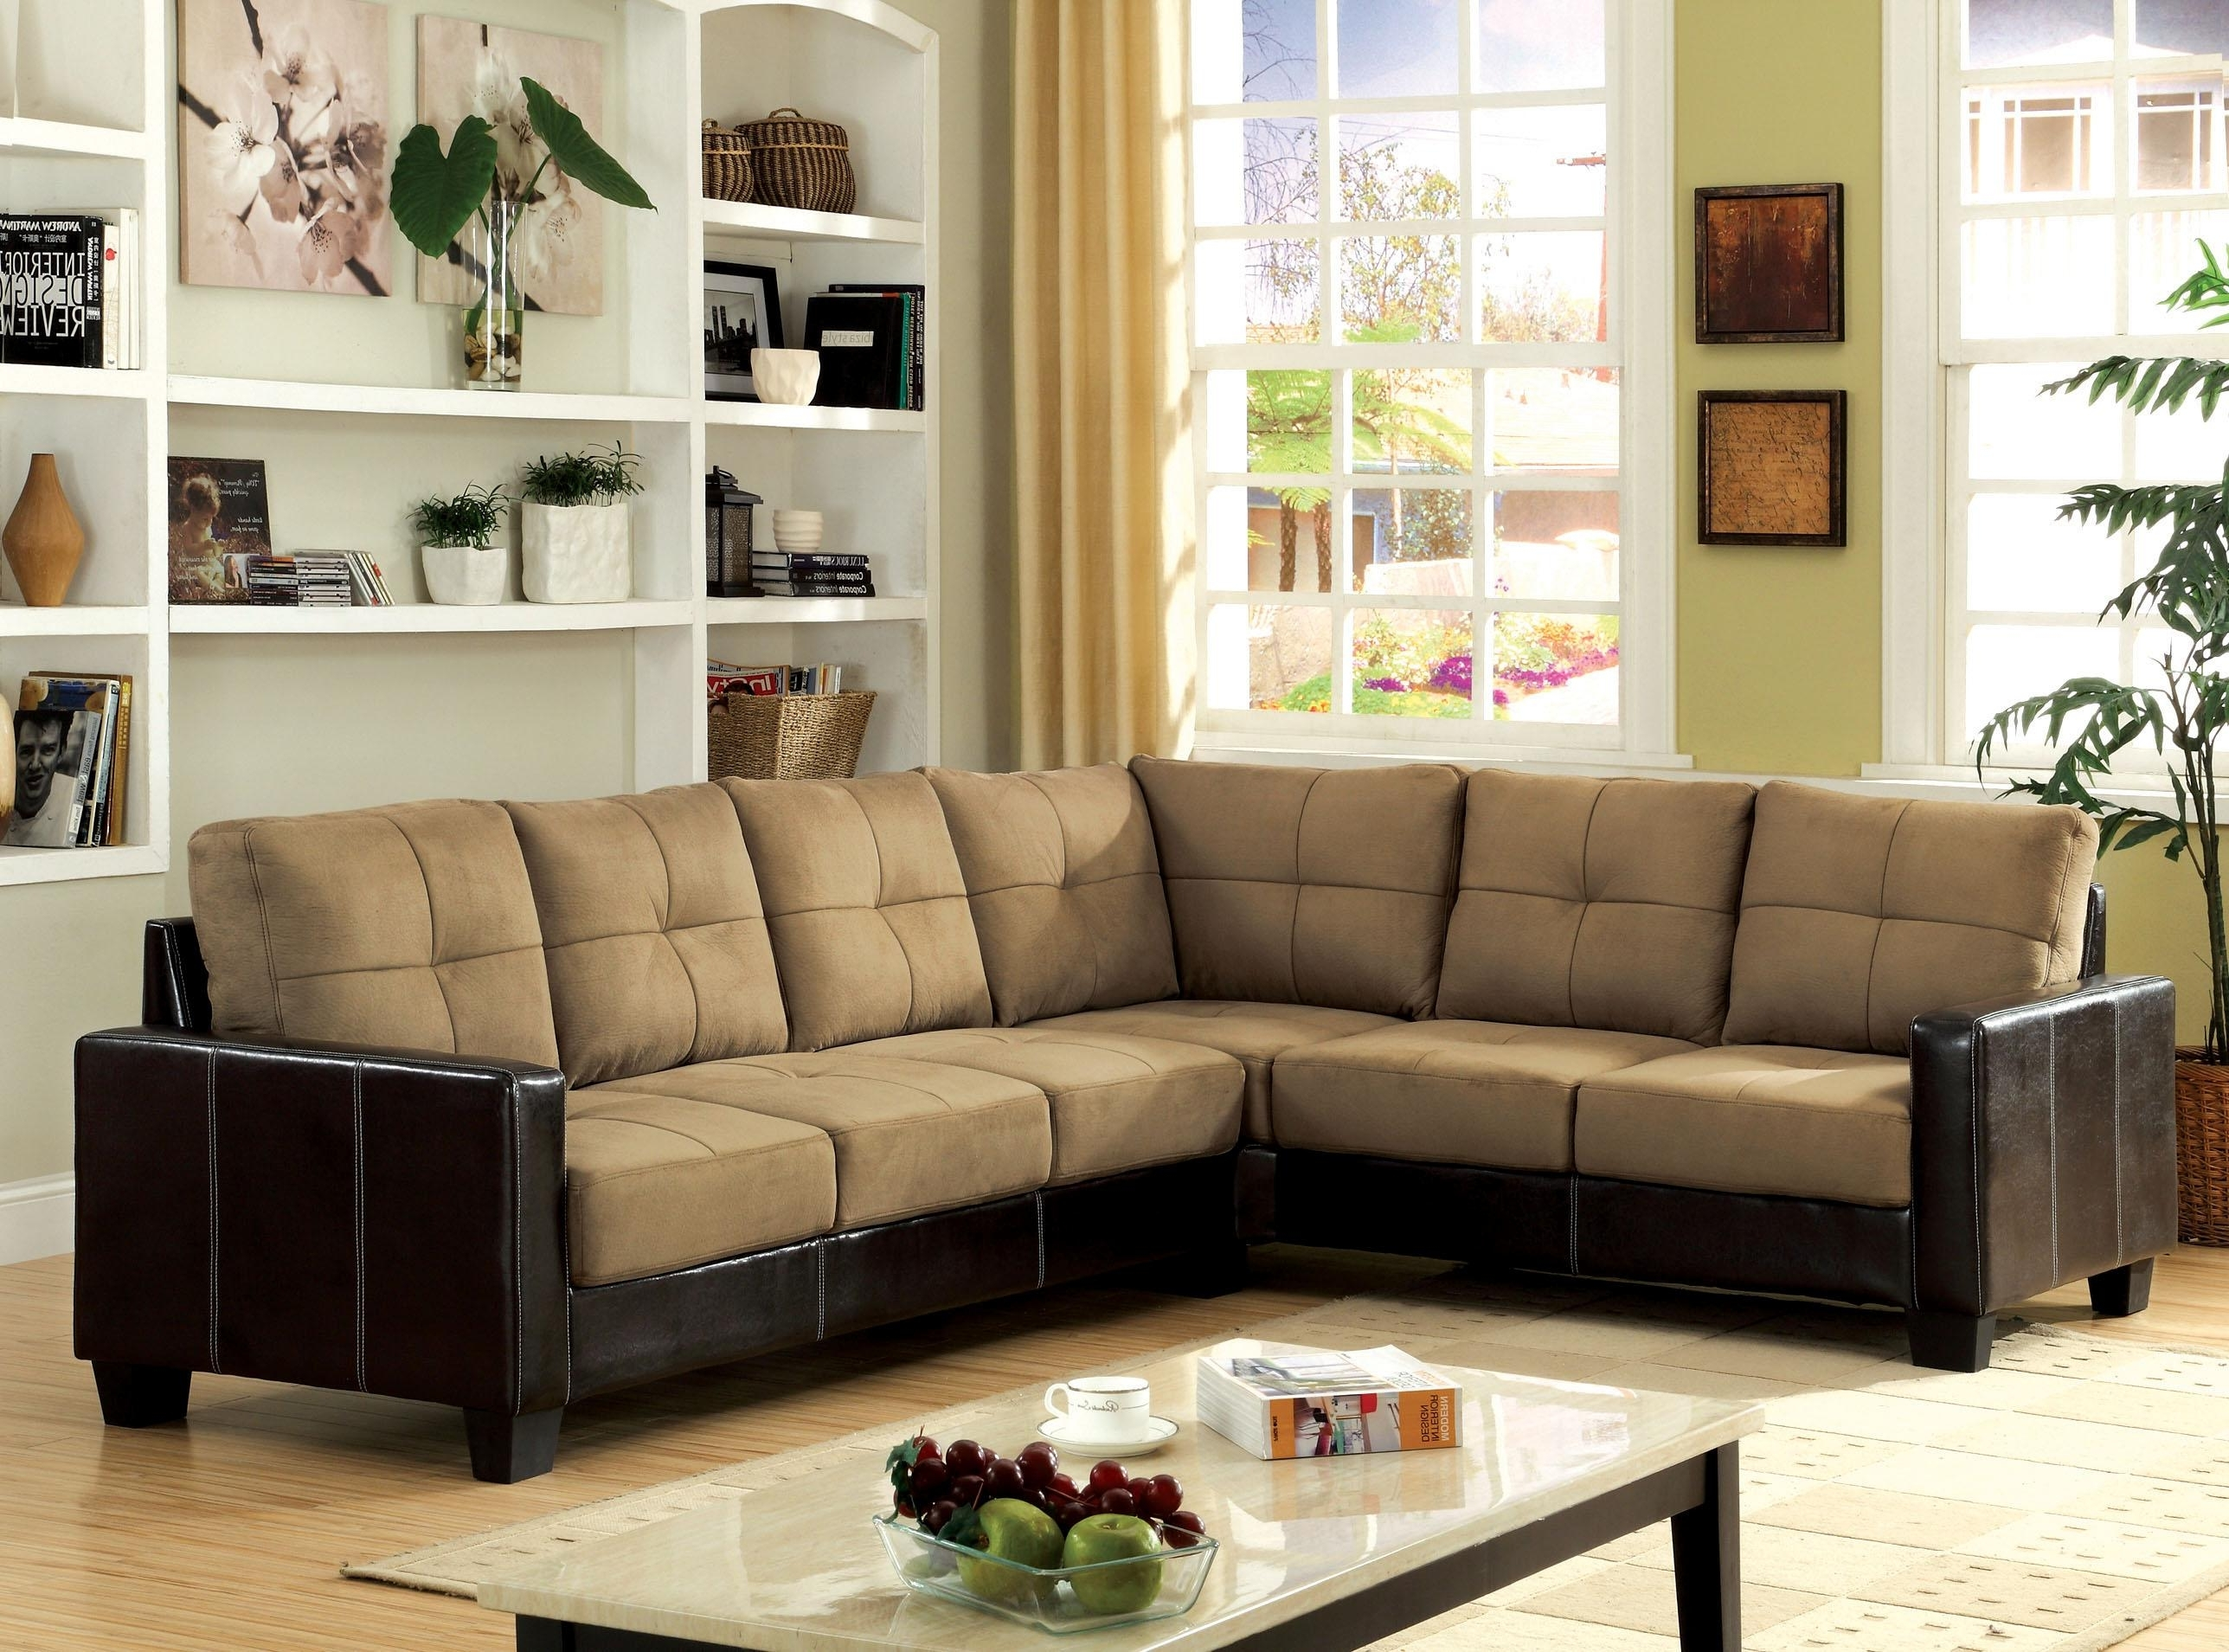 Sectional Sofas At Amazon Regarding Newest Sectional Sofas Amazon – Cleanupflorida (View 18 of 20)